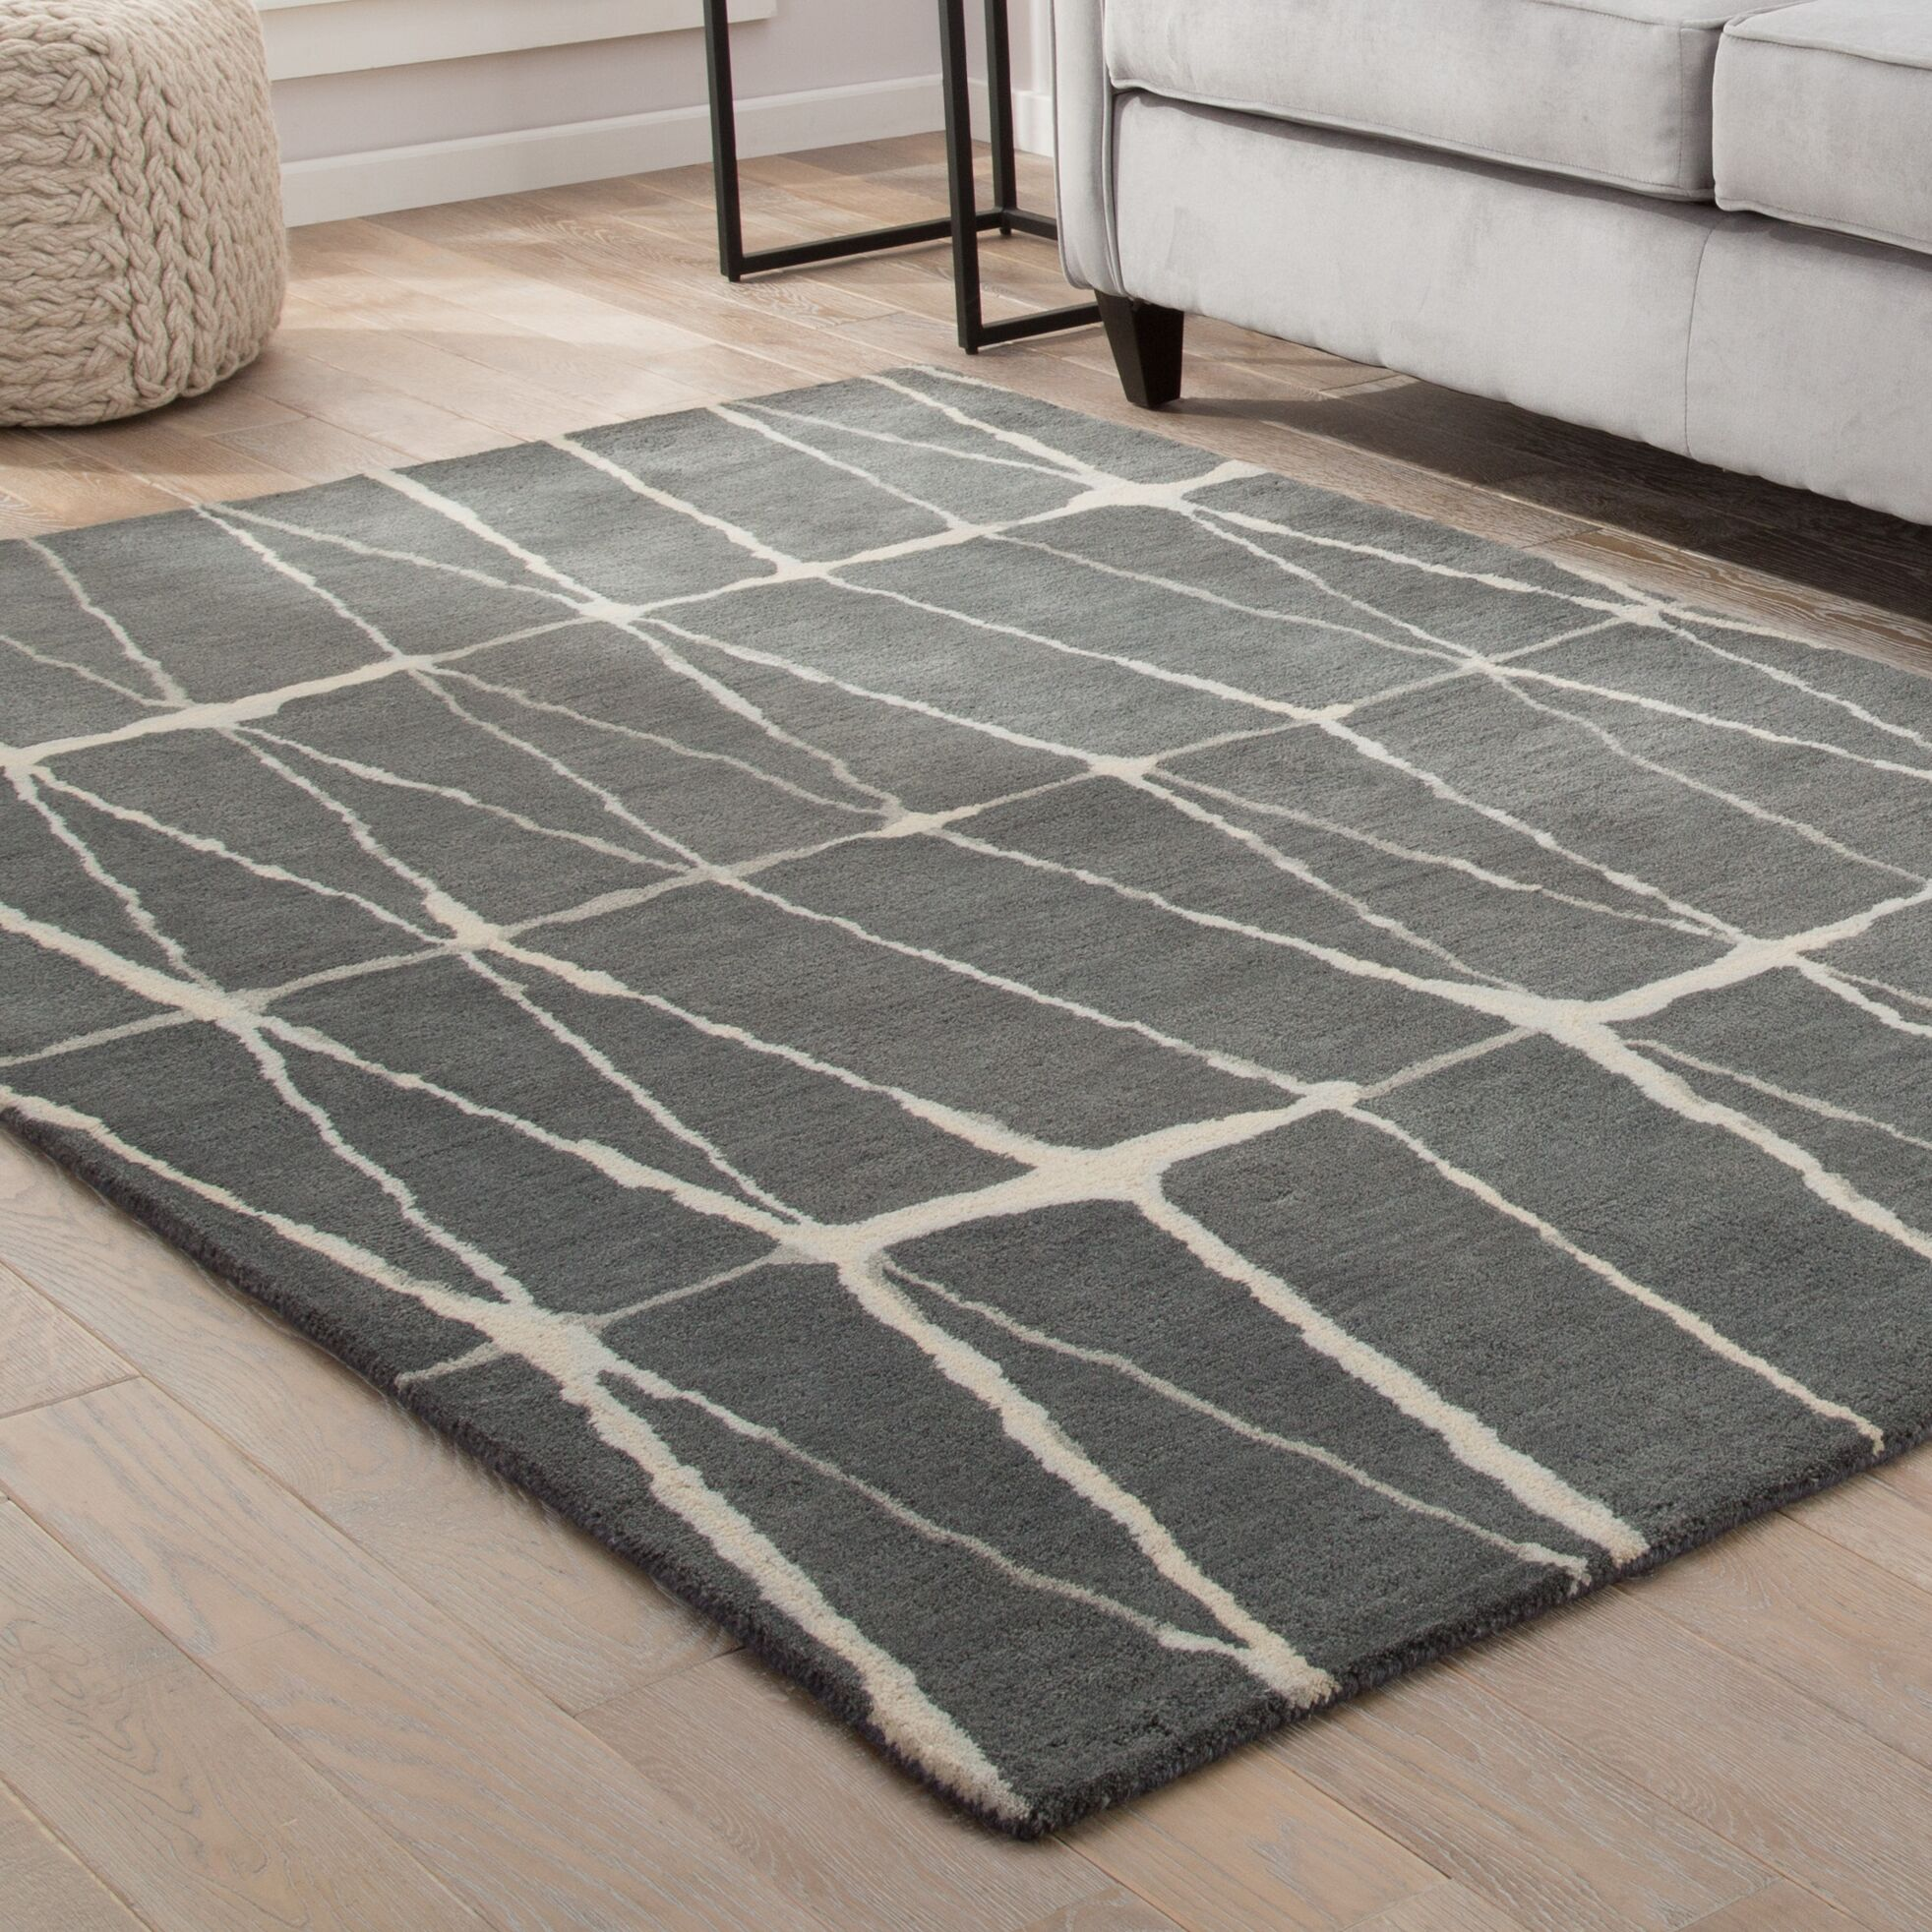 Heiss Hand-Tufted Gray/Cream Area Rug Rug Size: Rectangle 9' x 13'